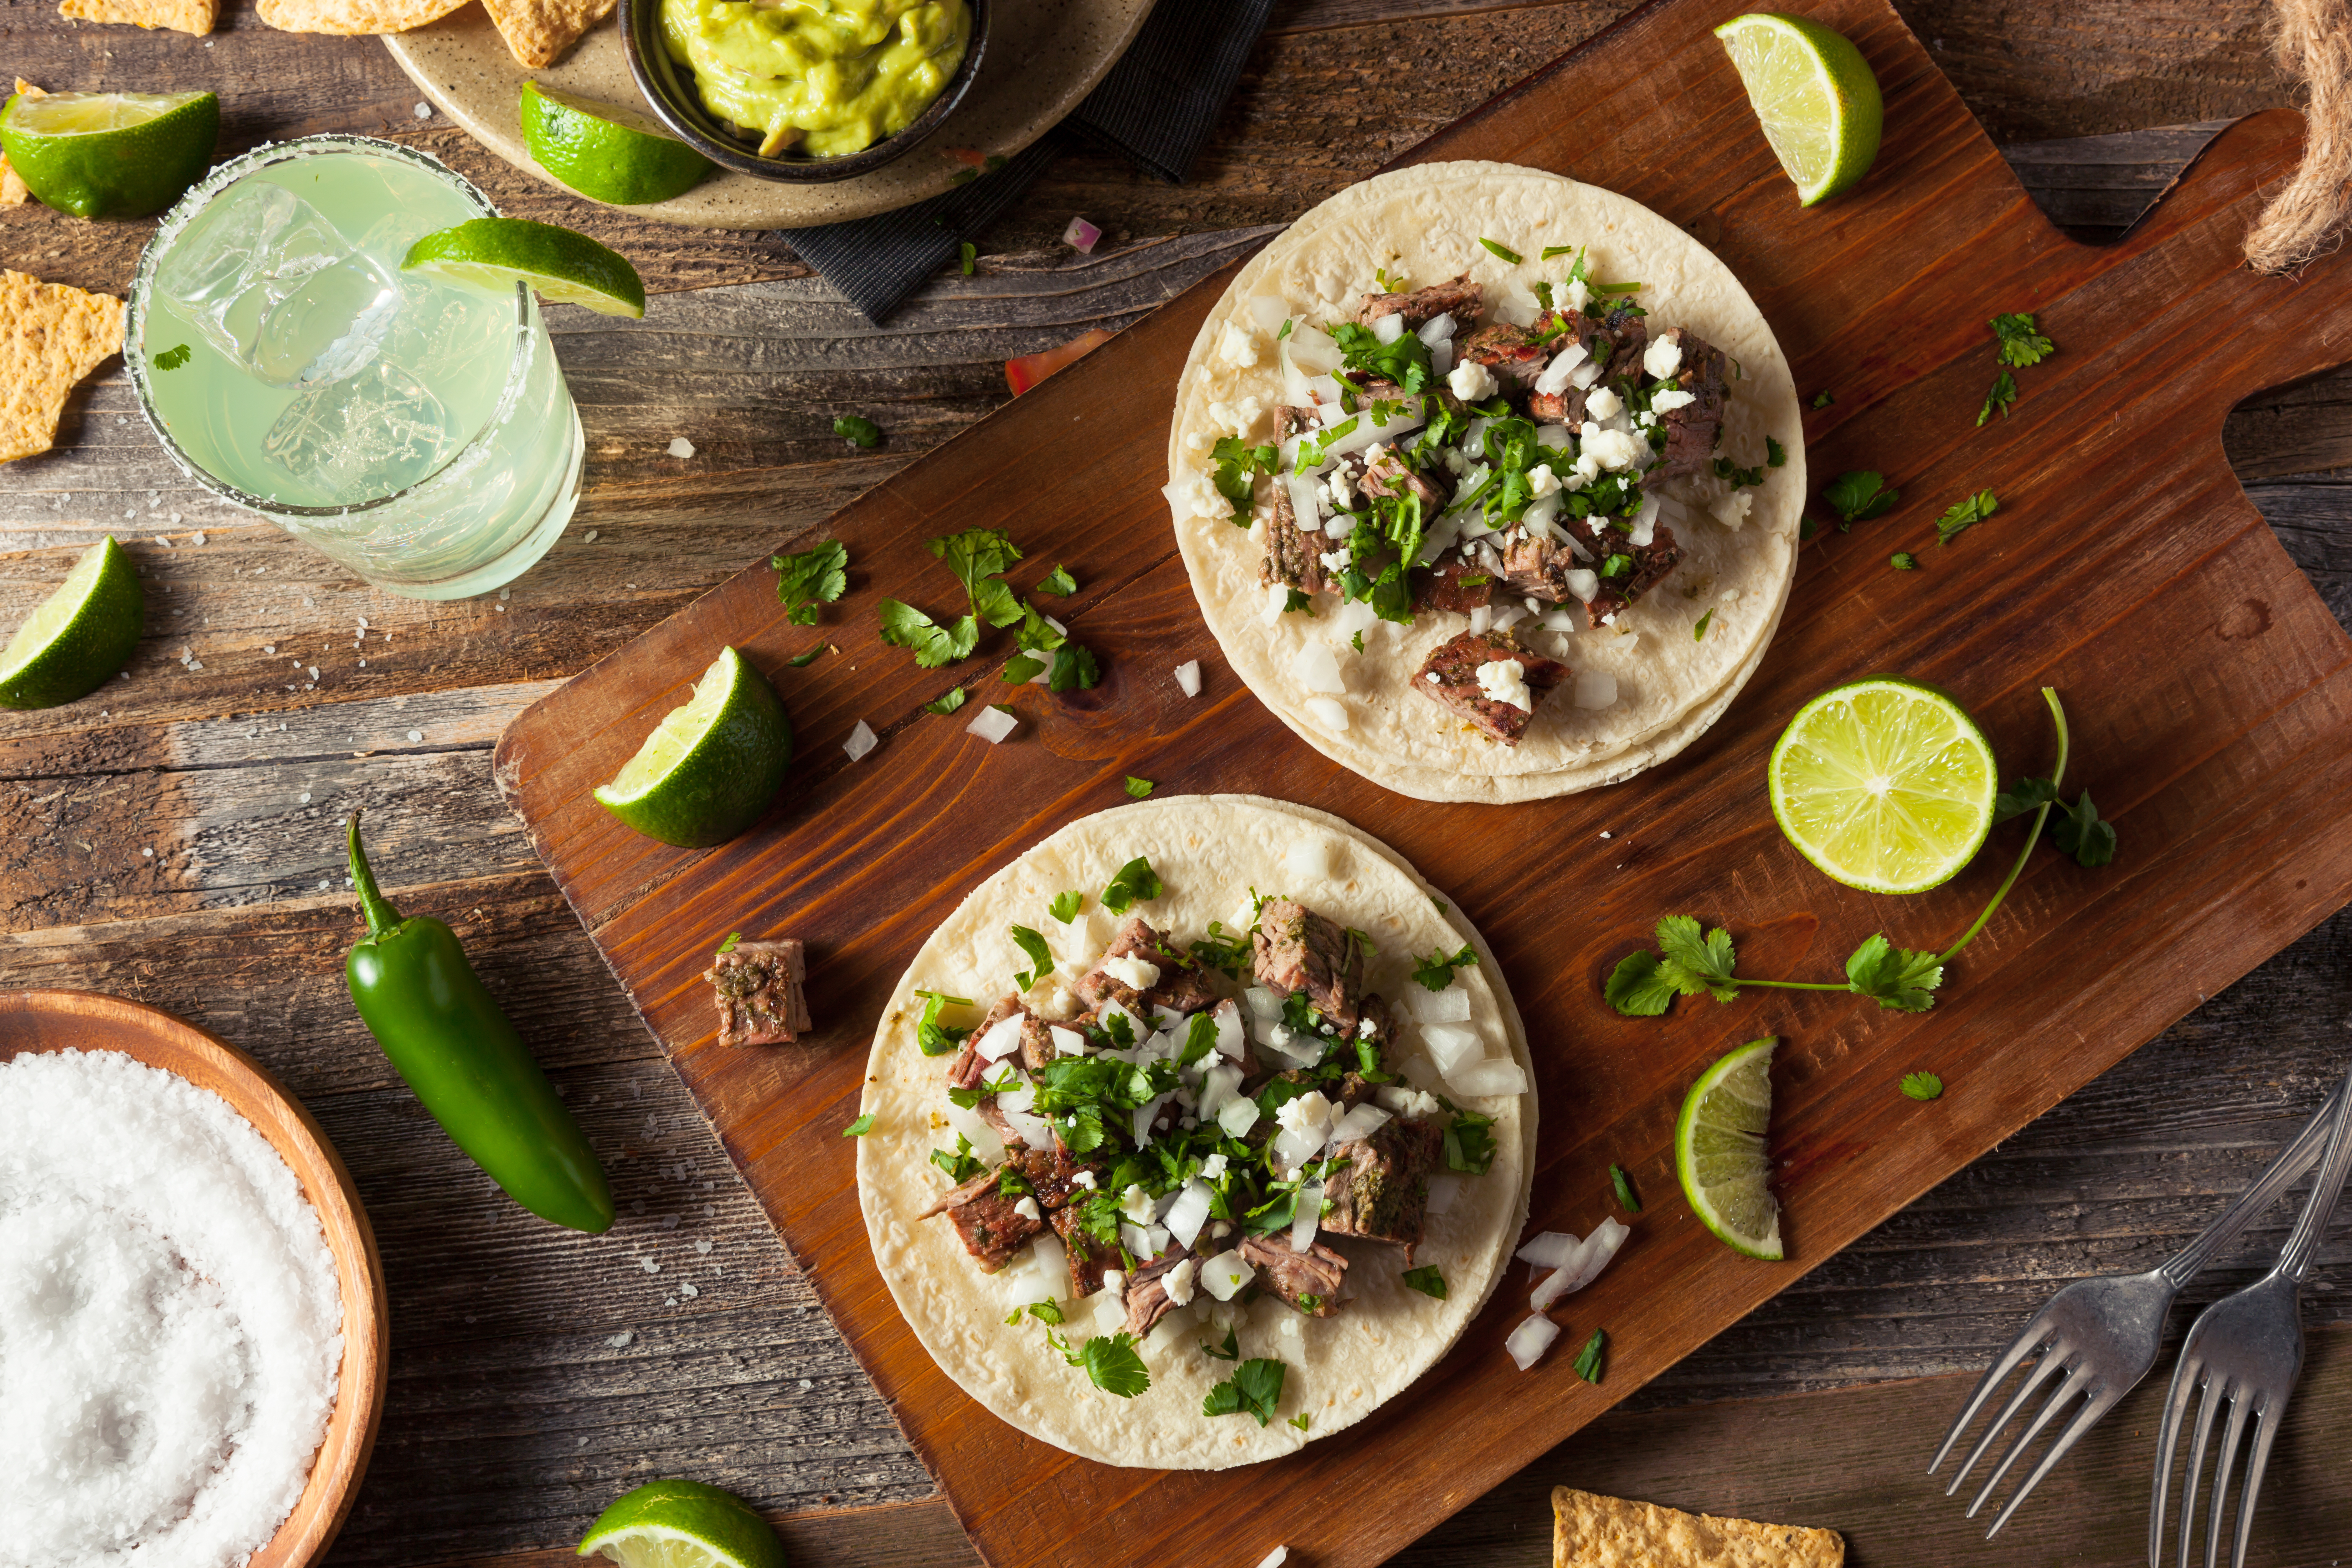 Tacos with salsa and limes with margaritas on a wooden table.